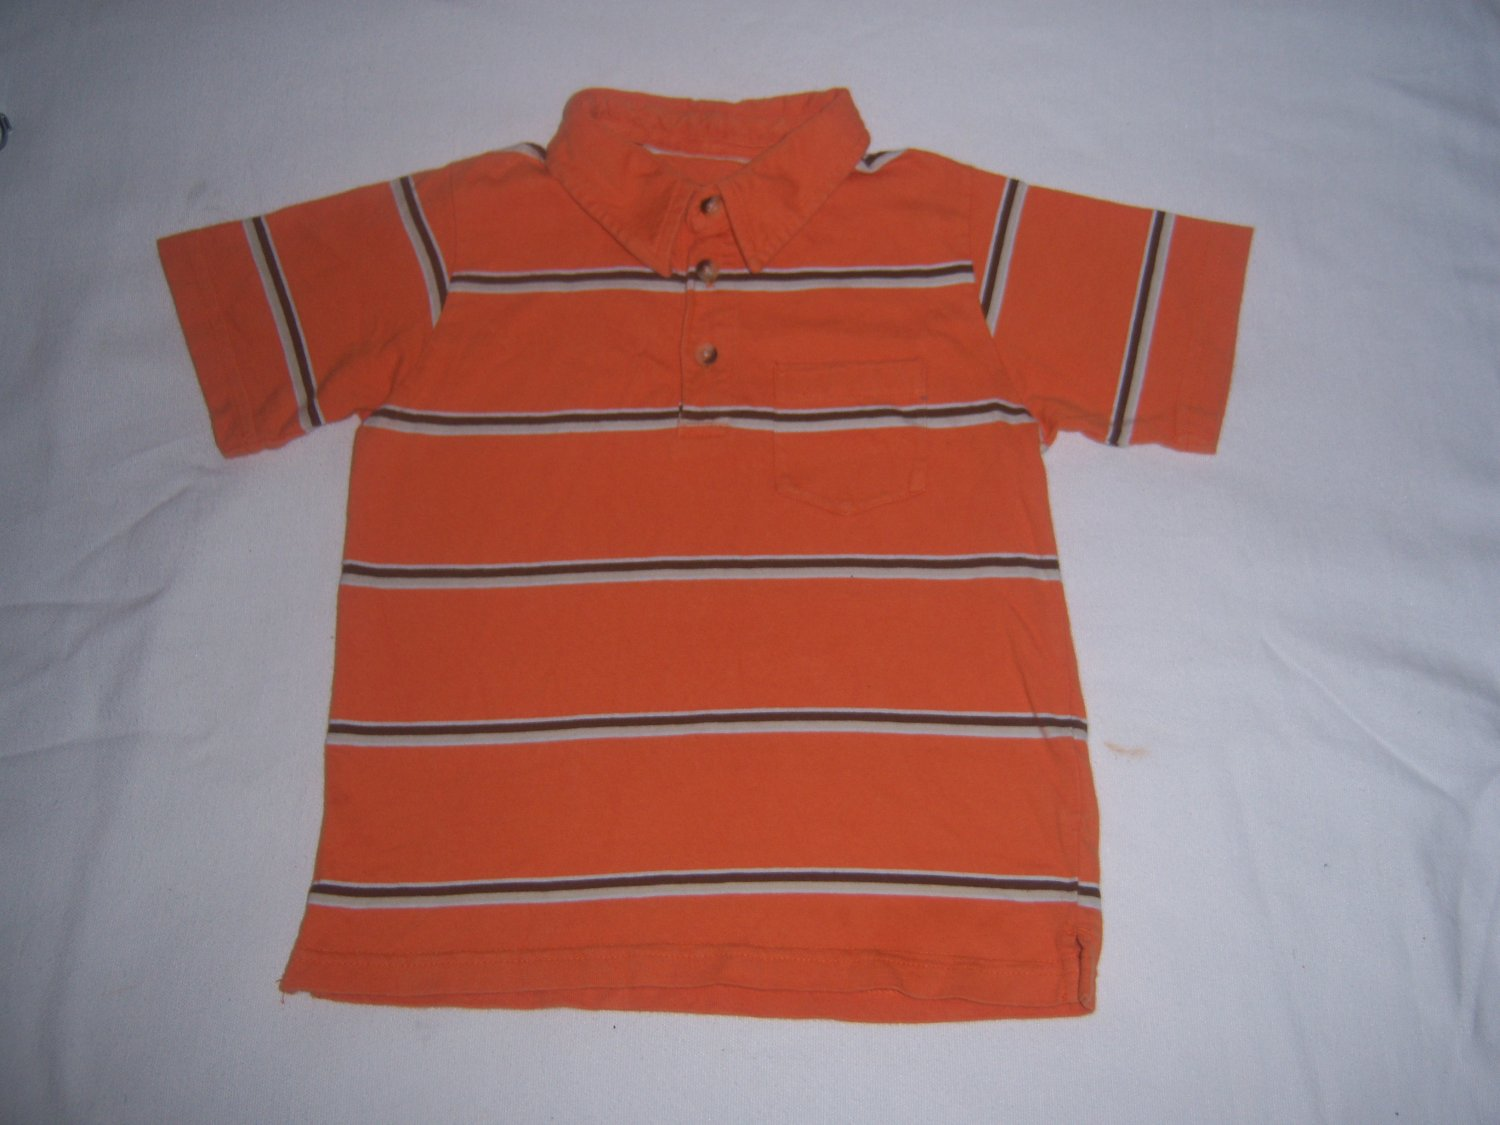 Faded Glory Toddler Boy's Polo-Style Orange Shirt Size 4T